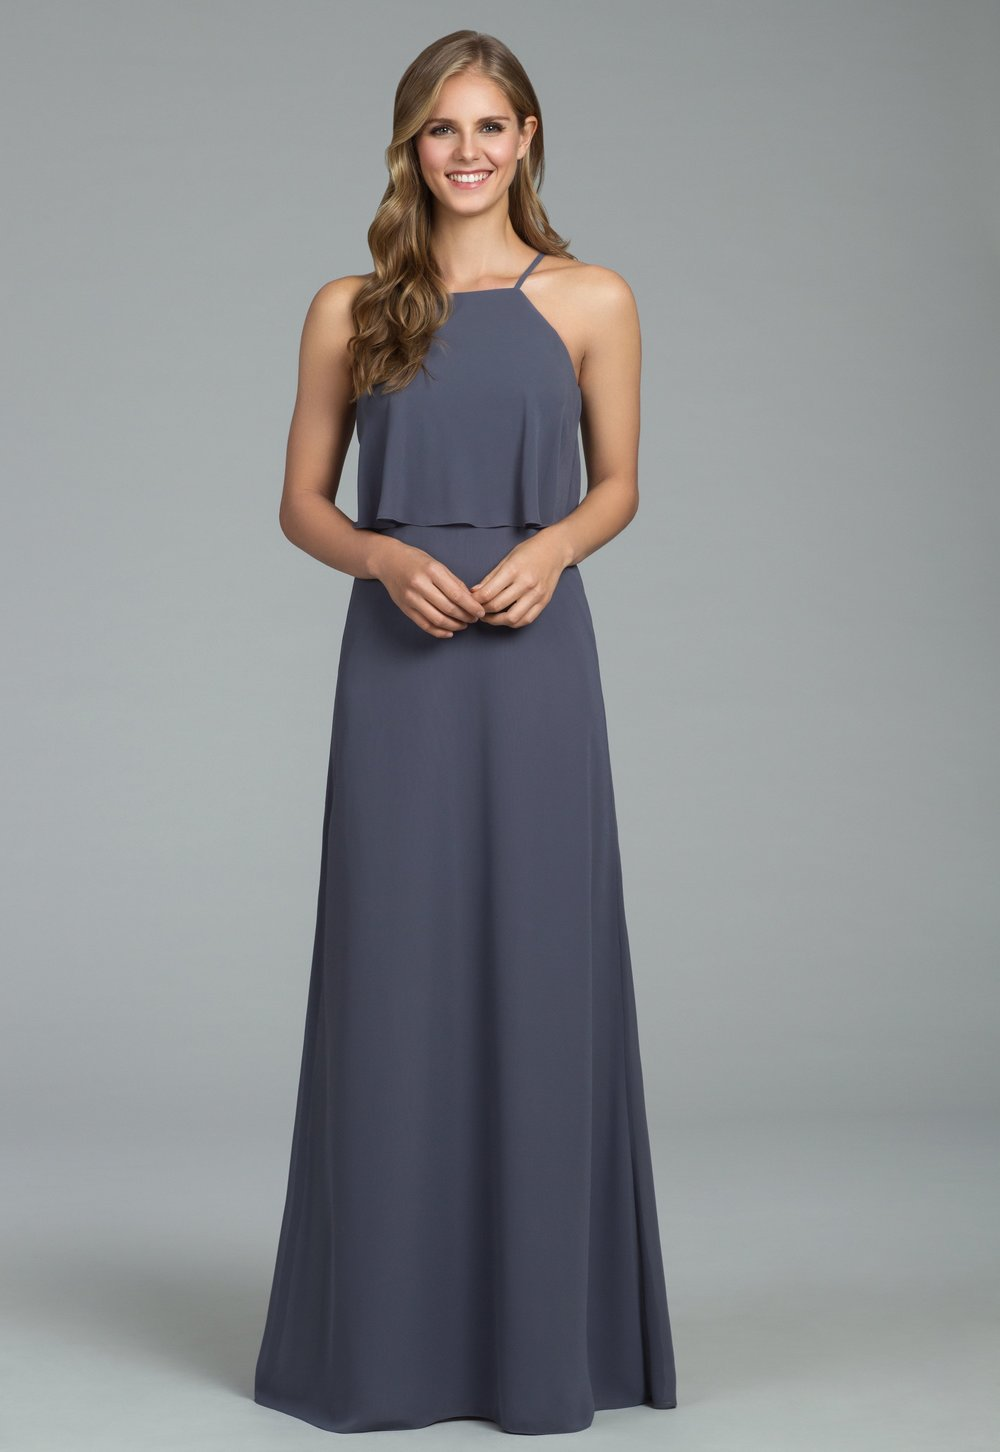 Hayley Paige Occasions Bridesmaids Special Occasion Spring 2018 style 5807